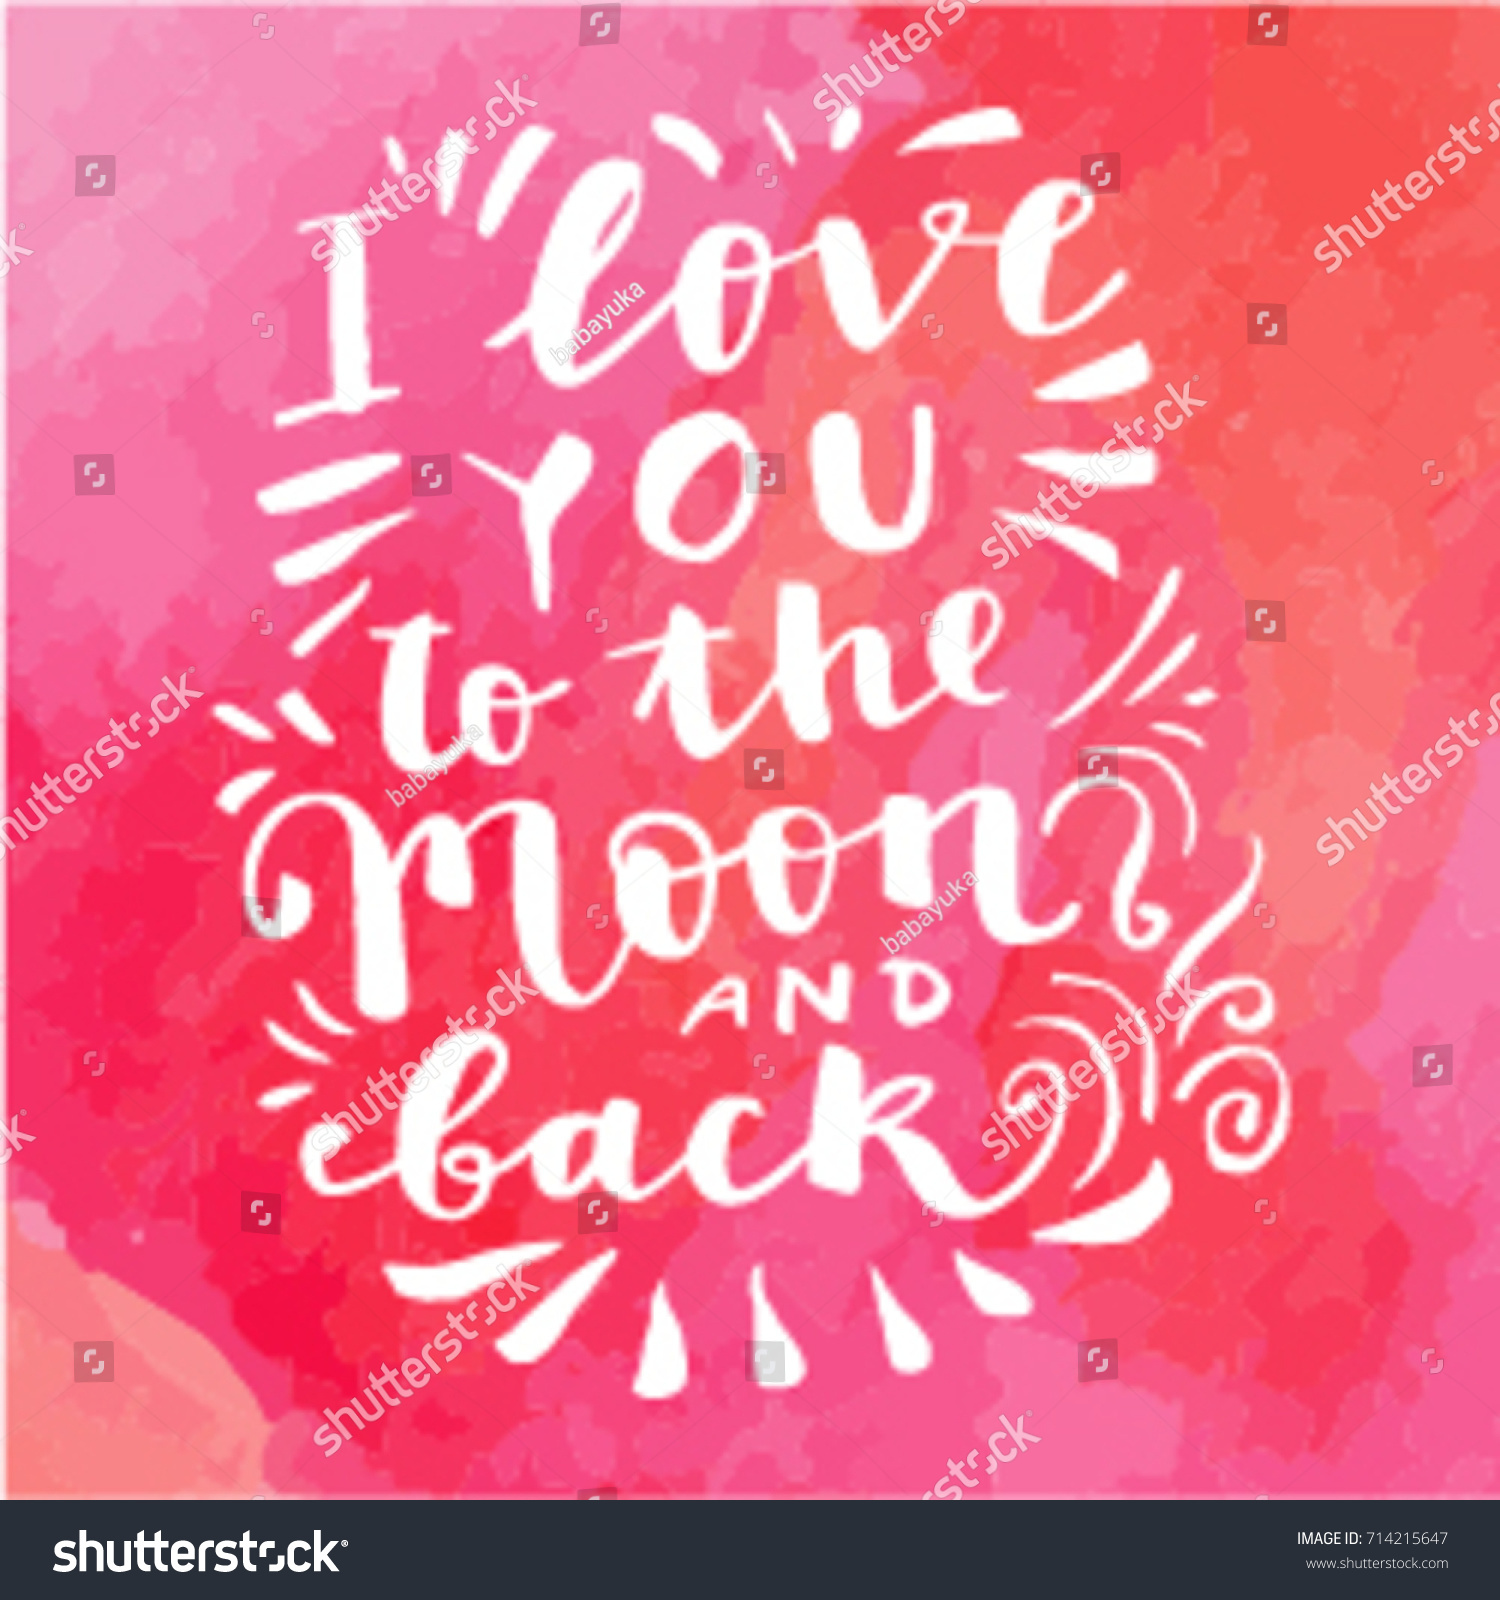 Love you moon back hand drawn stock vector 714215647 shutterstock i love you to the moon and back hand drawn calligraphic card on red watercolor textured kristyandbryce Images